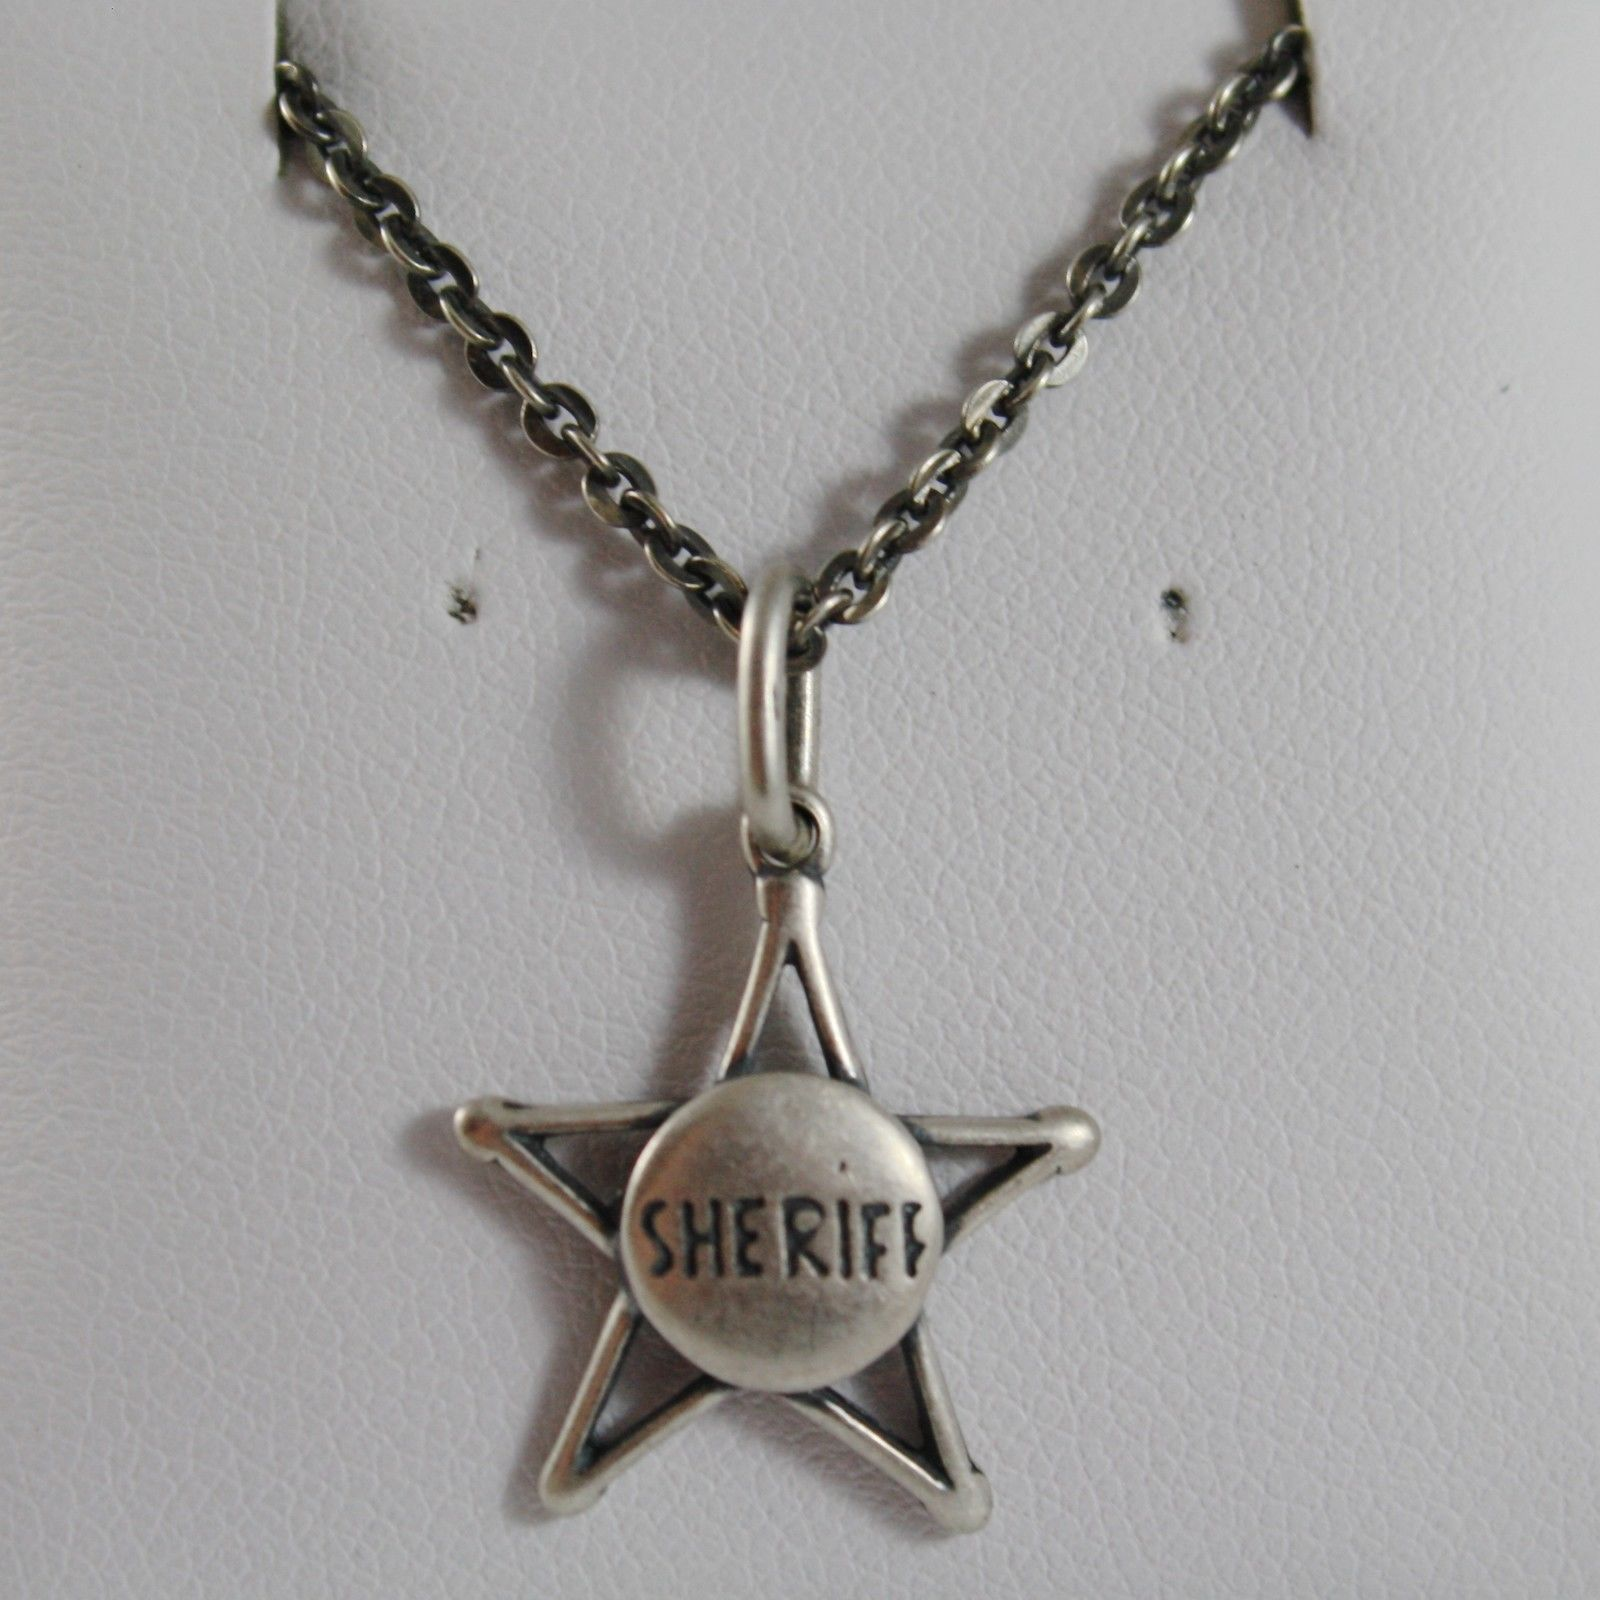 925 BURNISHED SILVER COWBOY SHERIFF STAR NECKLACE PENDANT CHAIN MADE IN ITALY